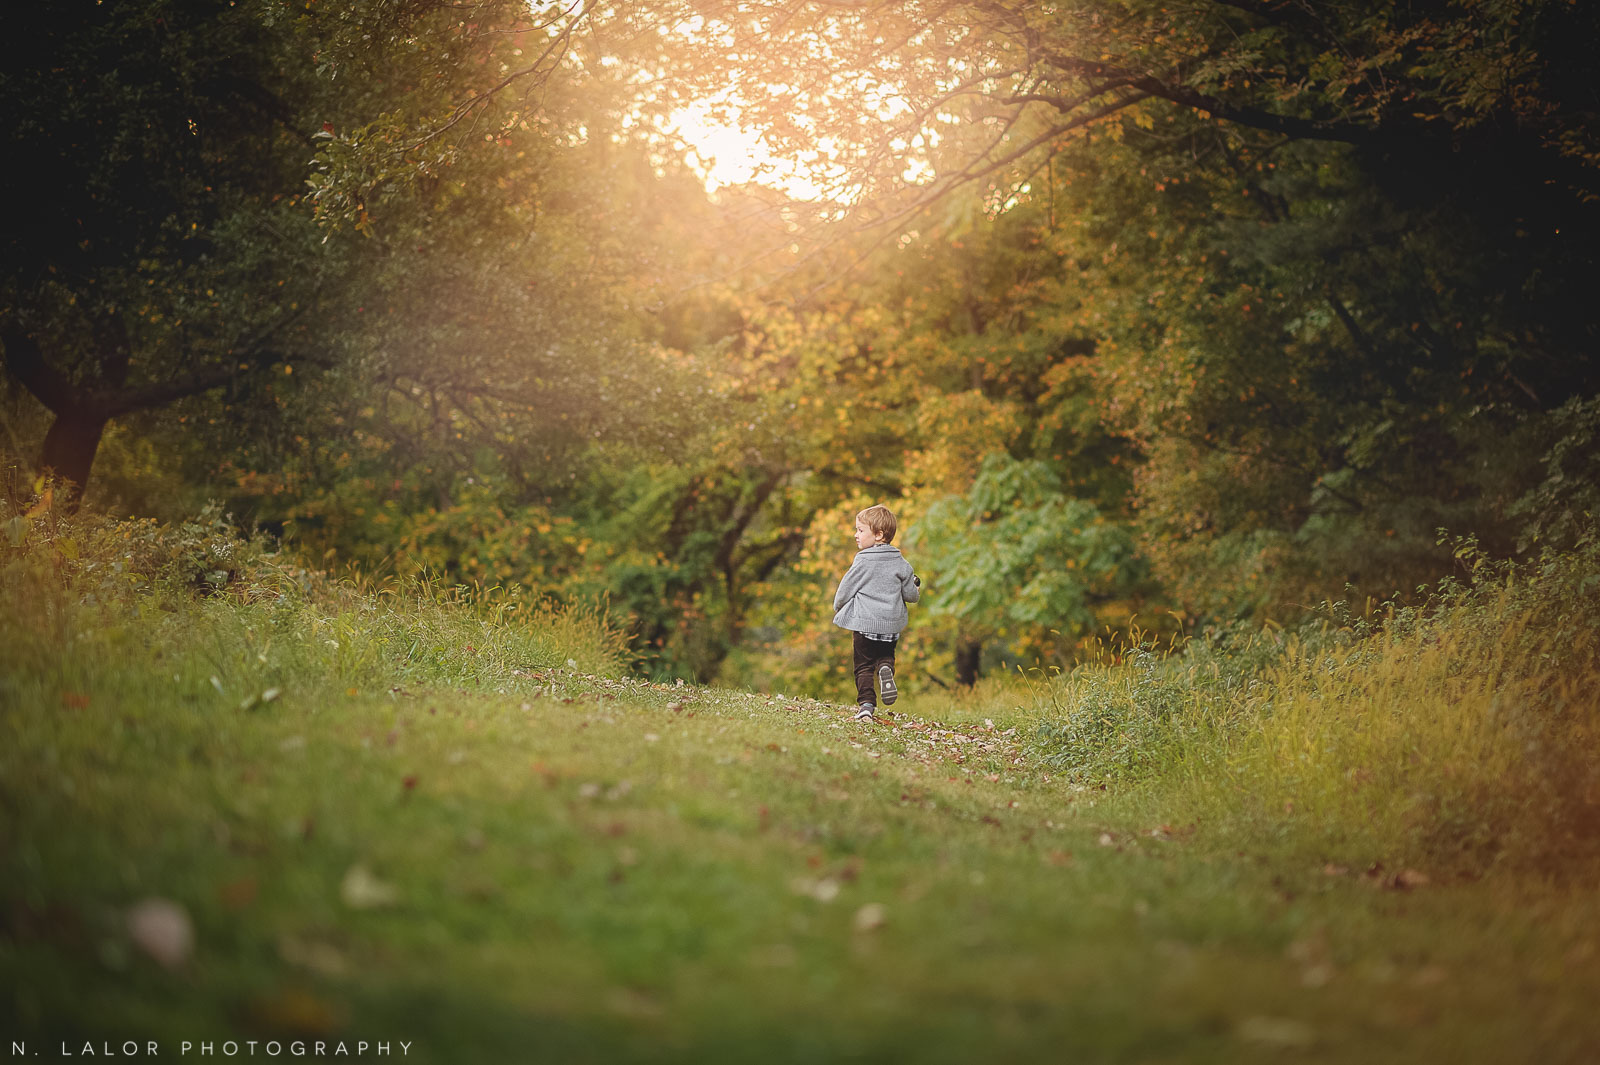 nlalor-photography-boy-fall-new-canaan-nature-center-photo-session-12.jpg